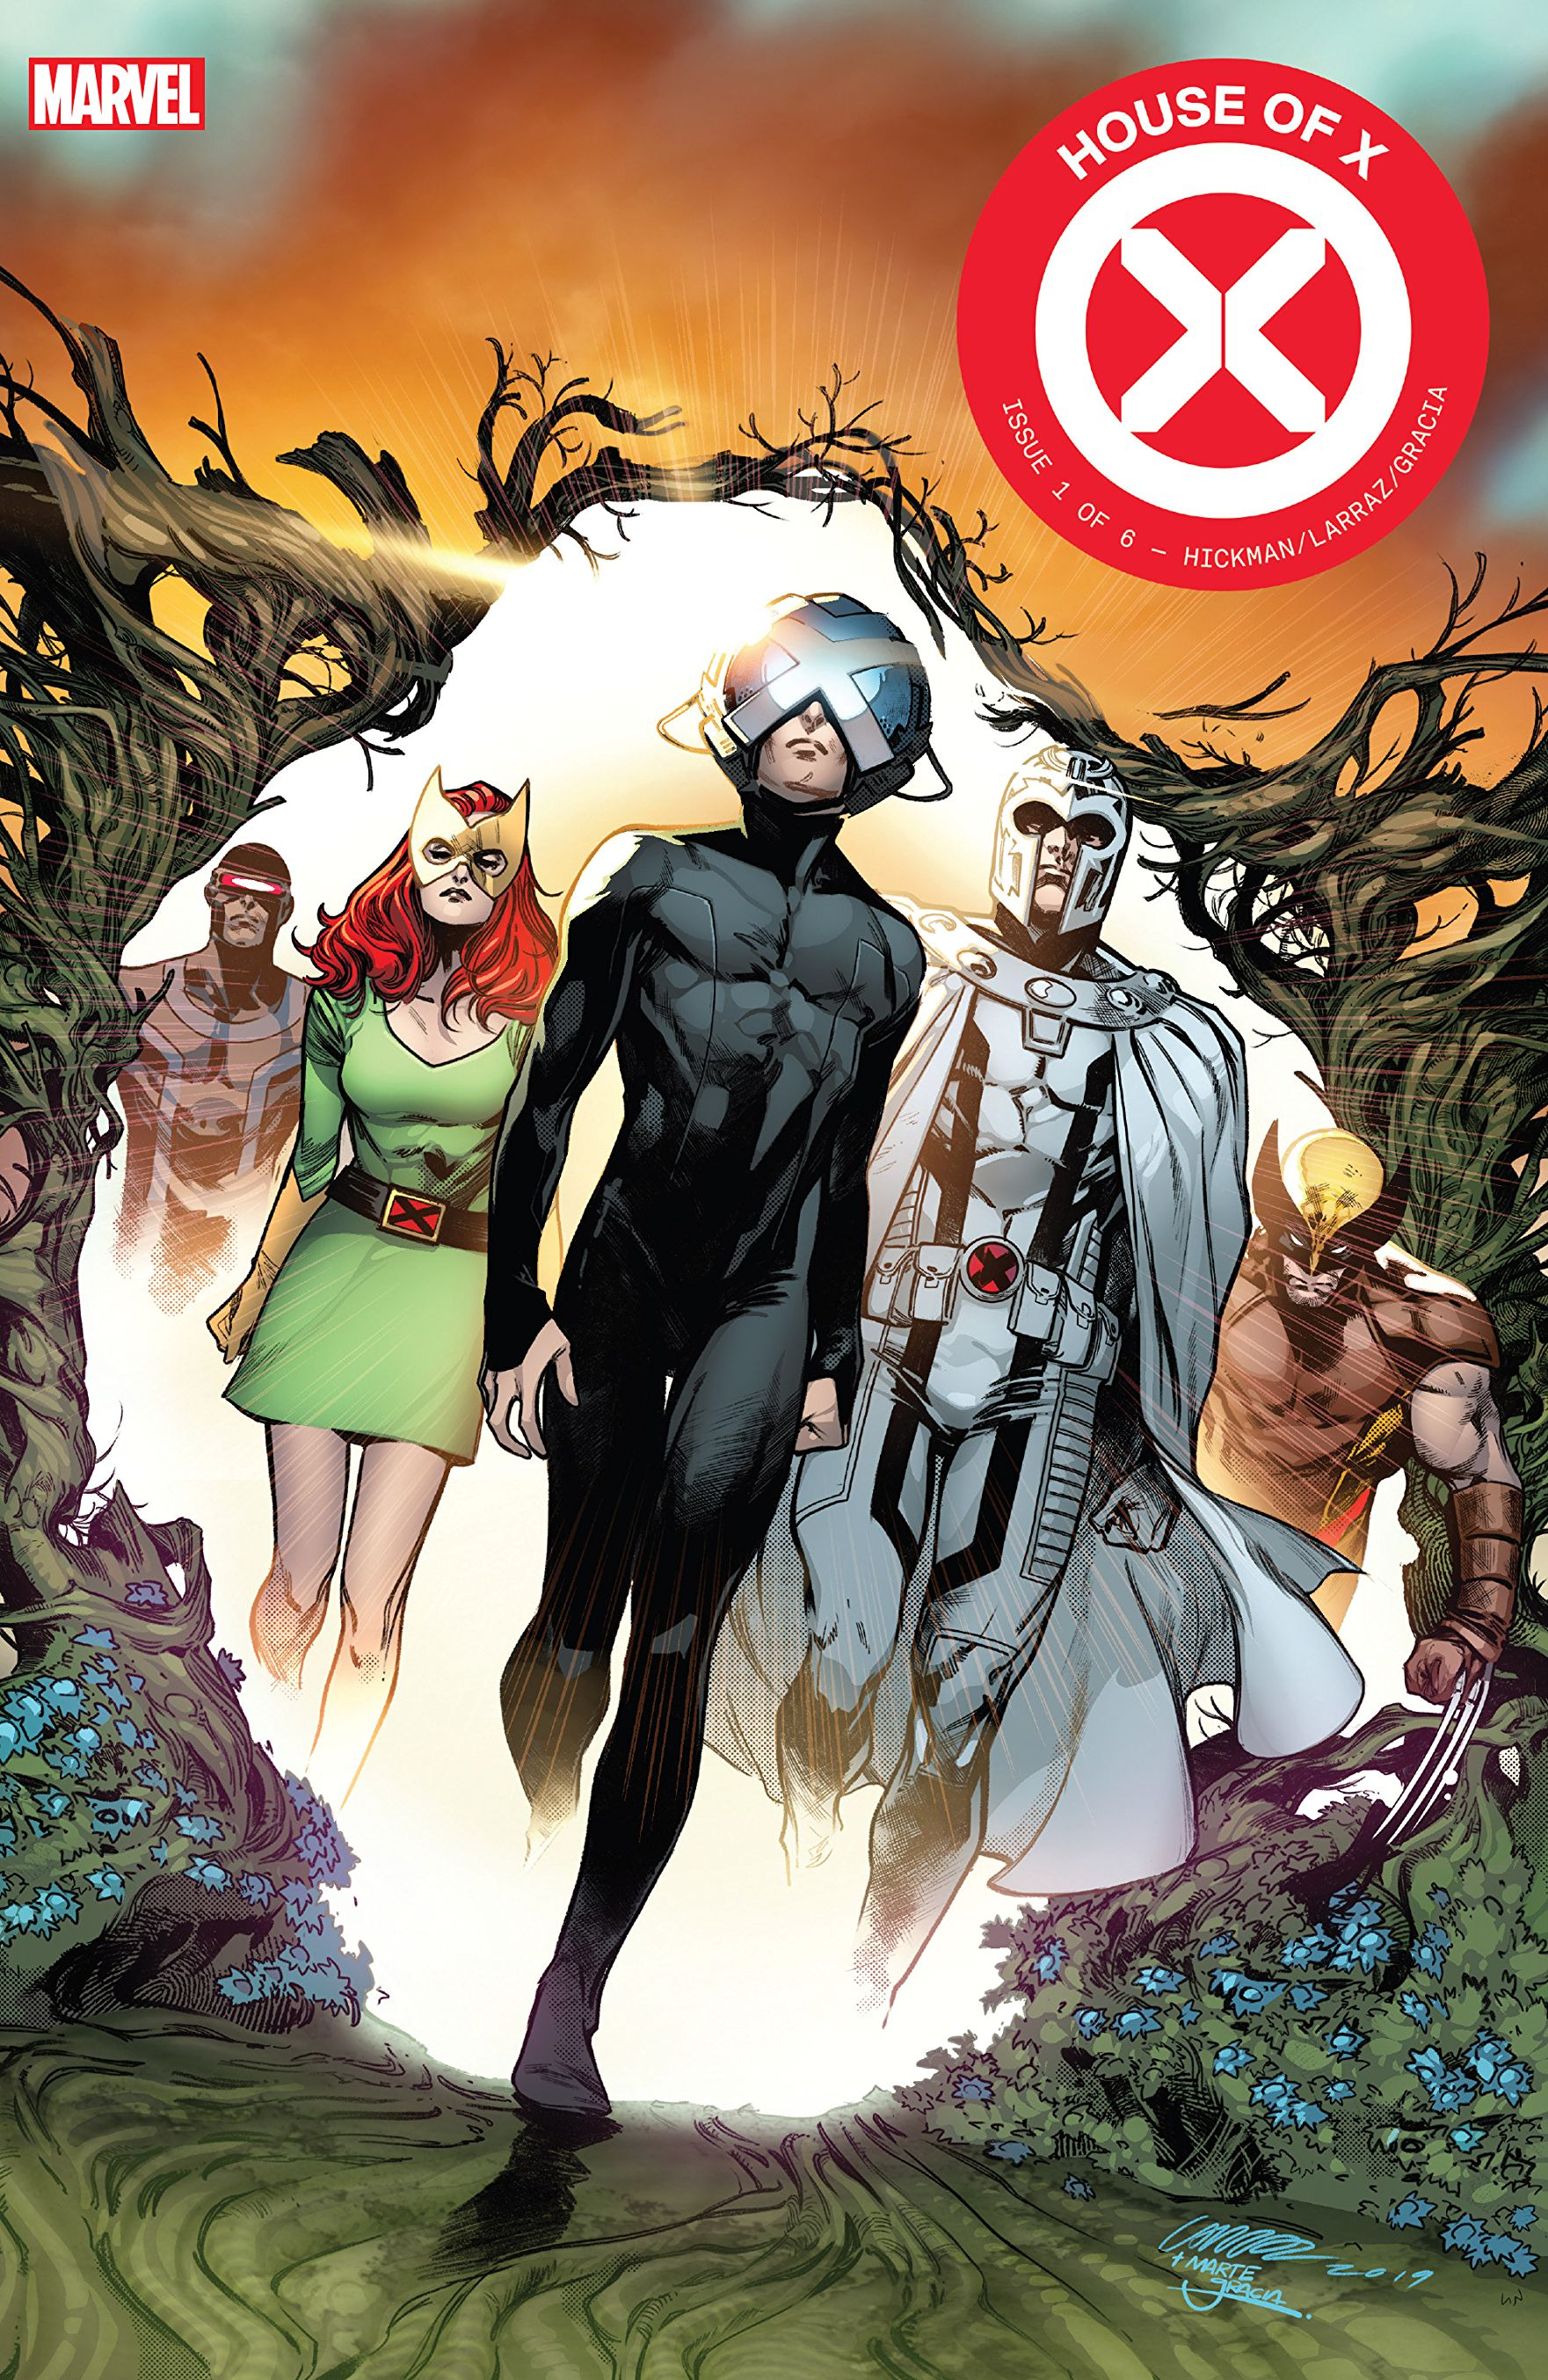 House of X Vol 1 1